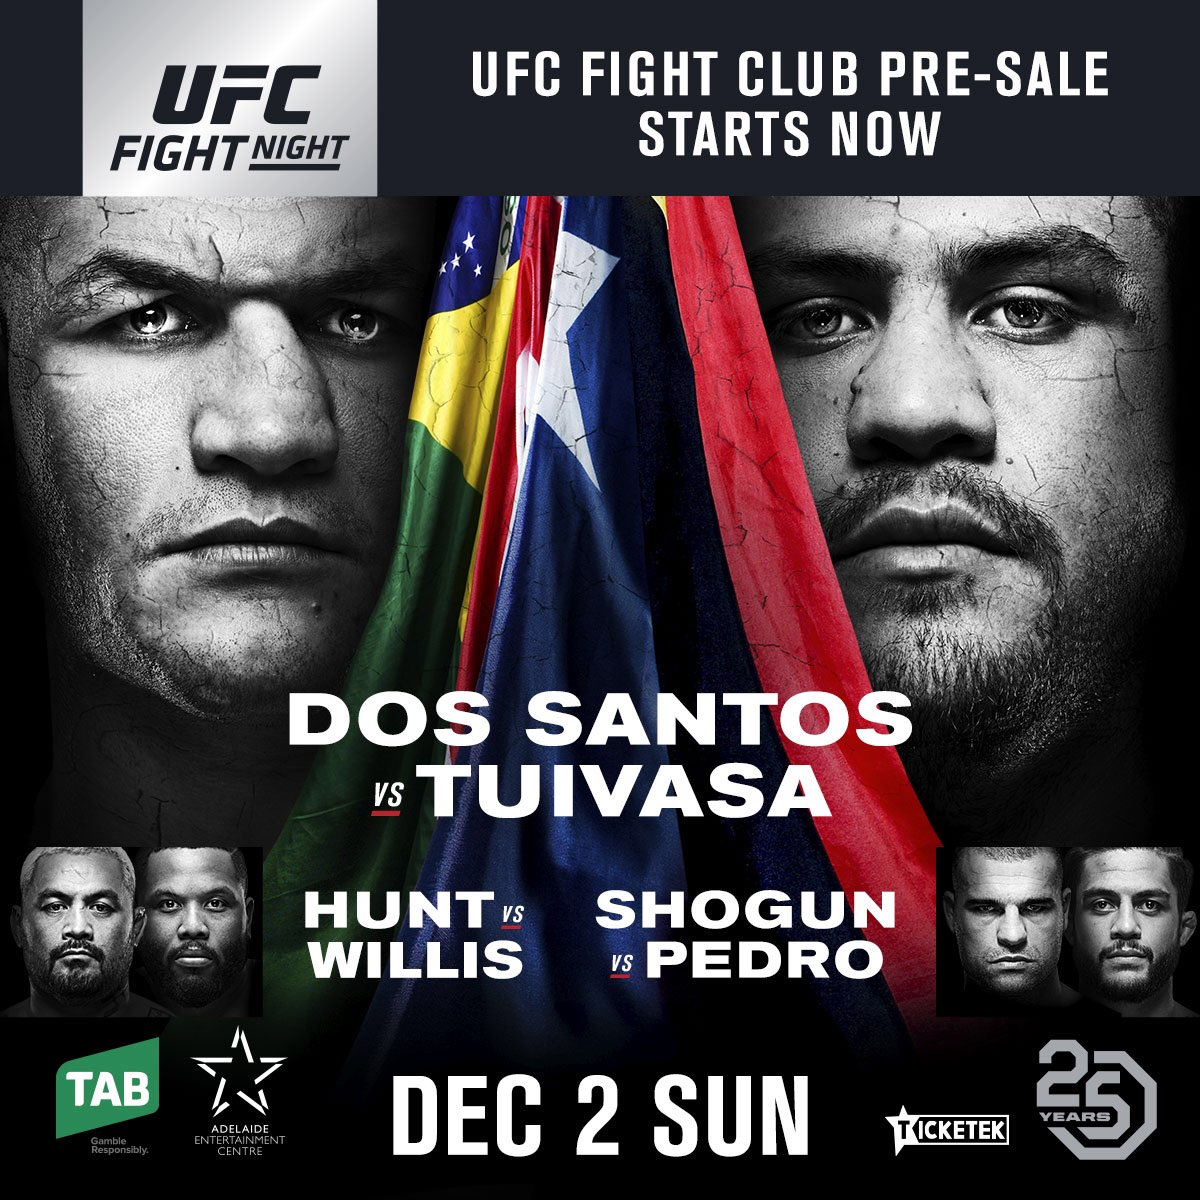 🚨 #UFCAdelaide 🎟🎟 available NOW to Fight Club members ➡️ bit.ly/2pIpLbq ⬅️